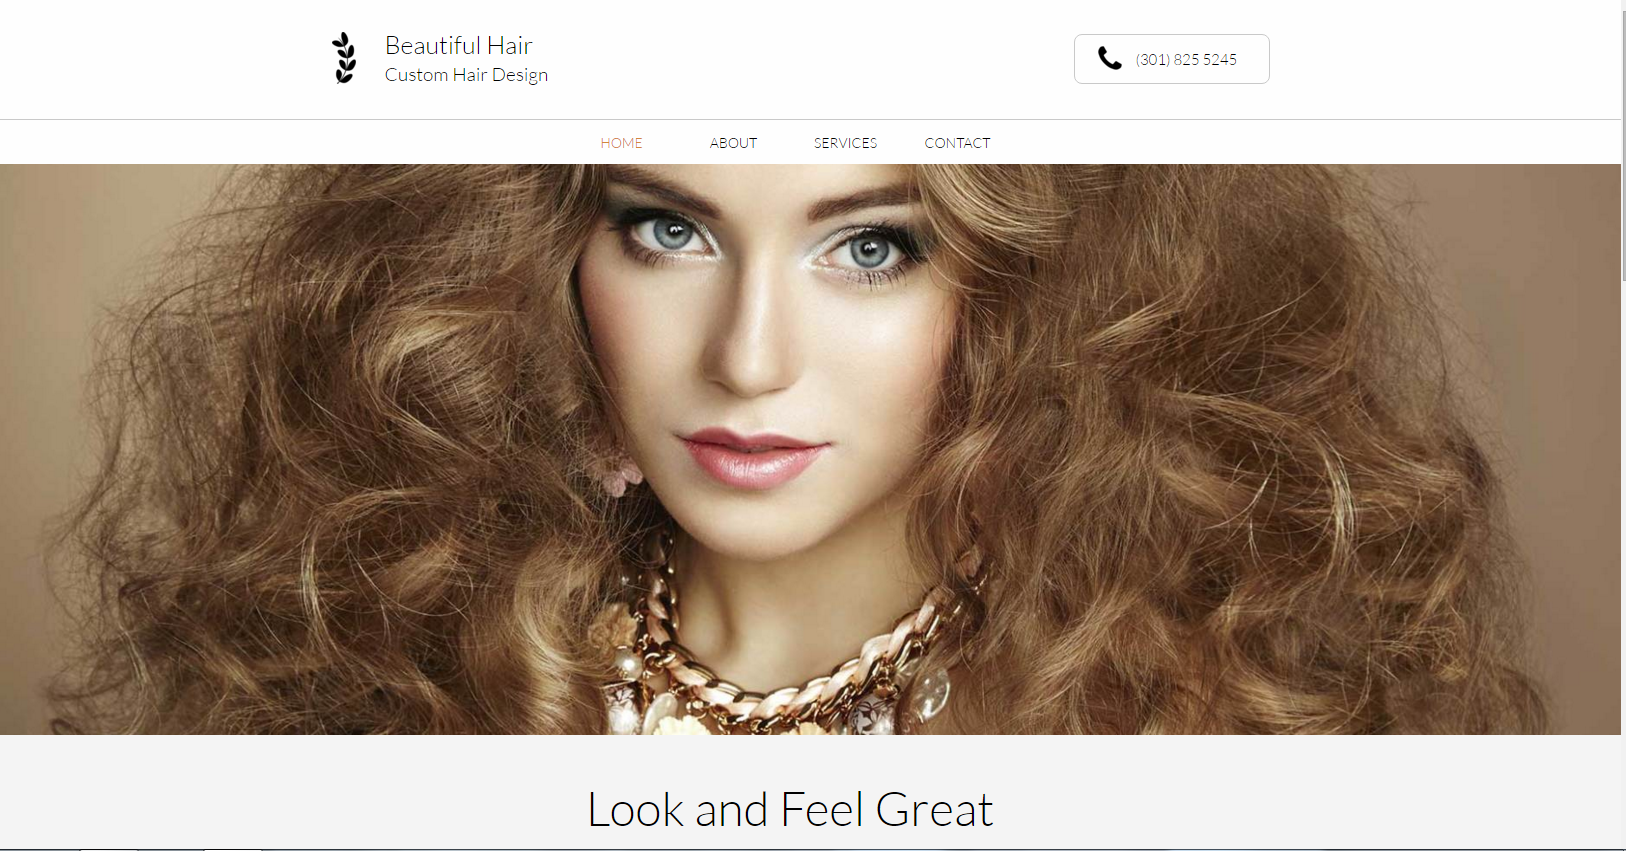 hair salon web design picture